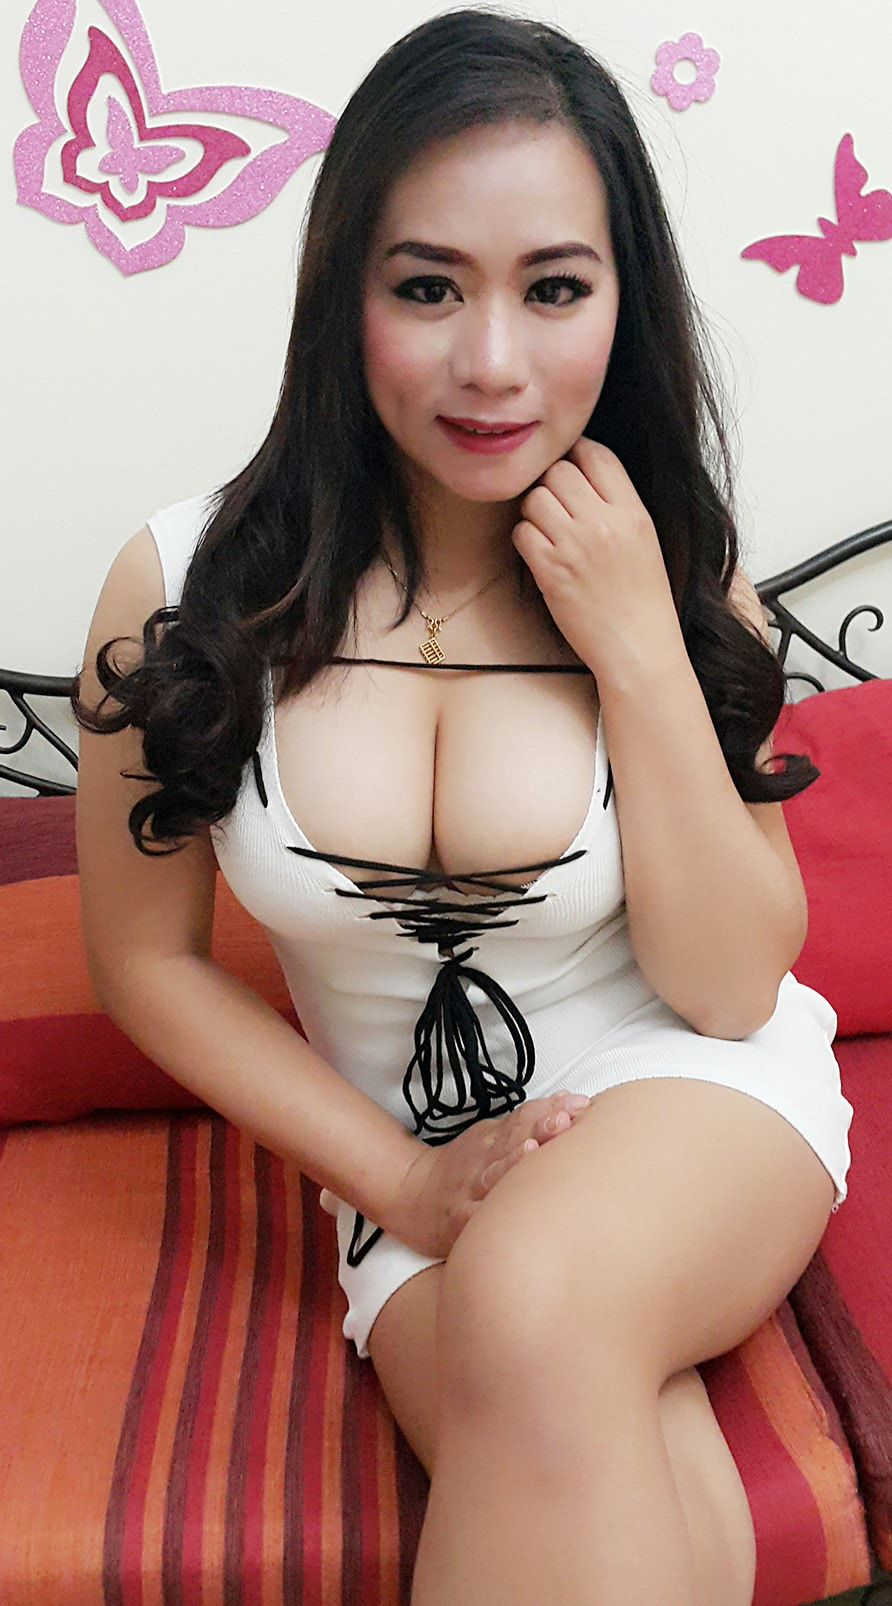 Big Boobs Sexy Girl New Come, Thai Escort In Muscat-2560